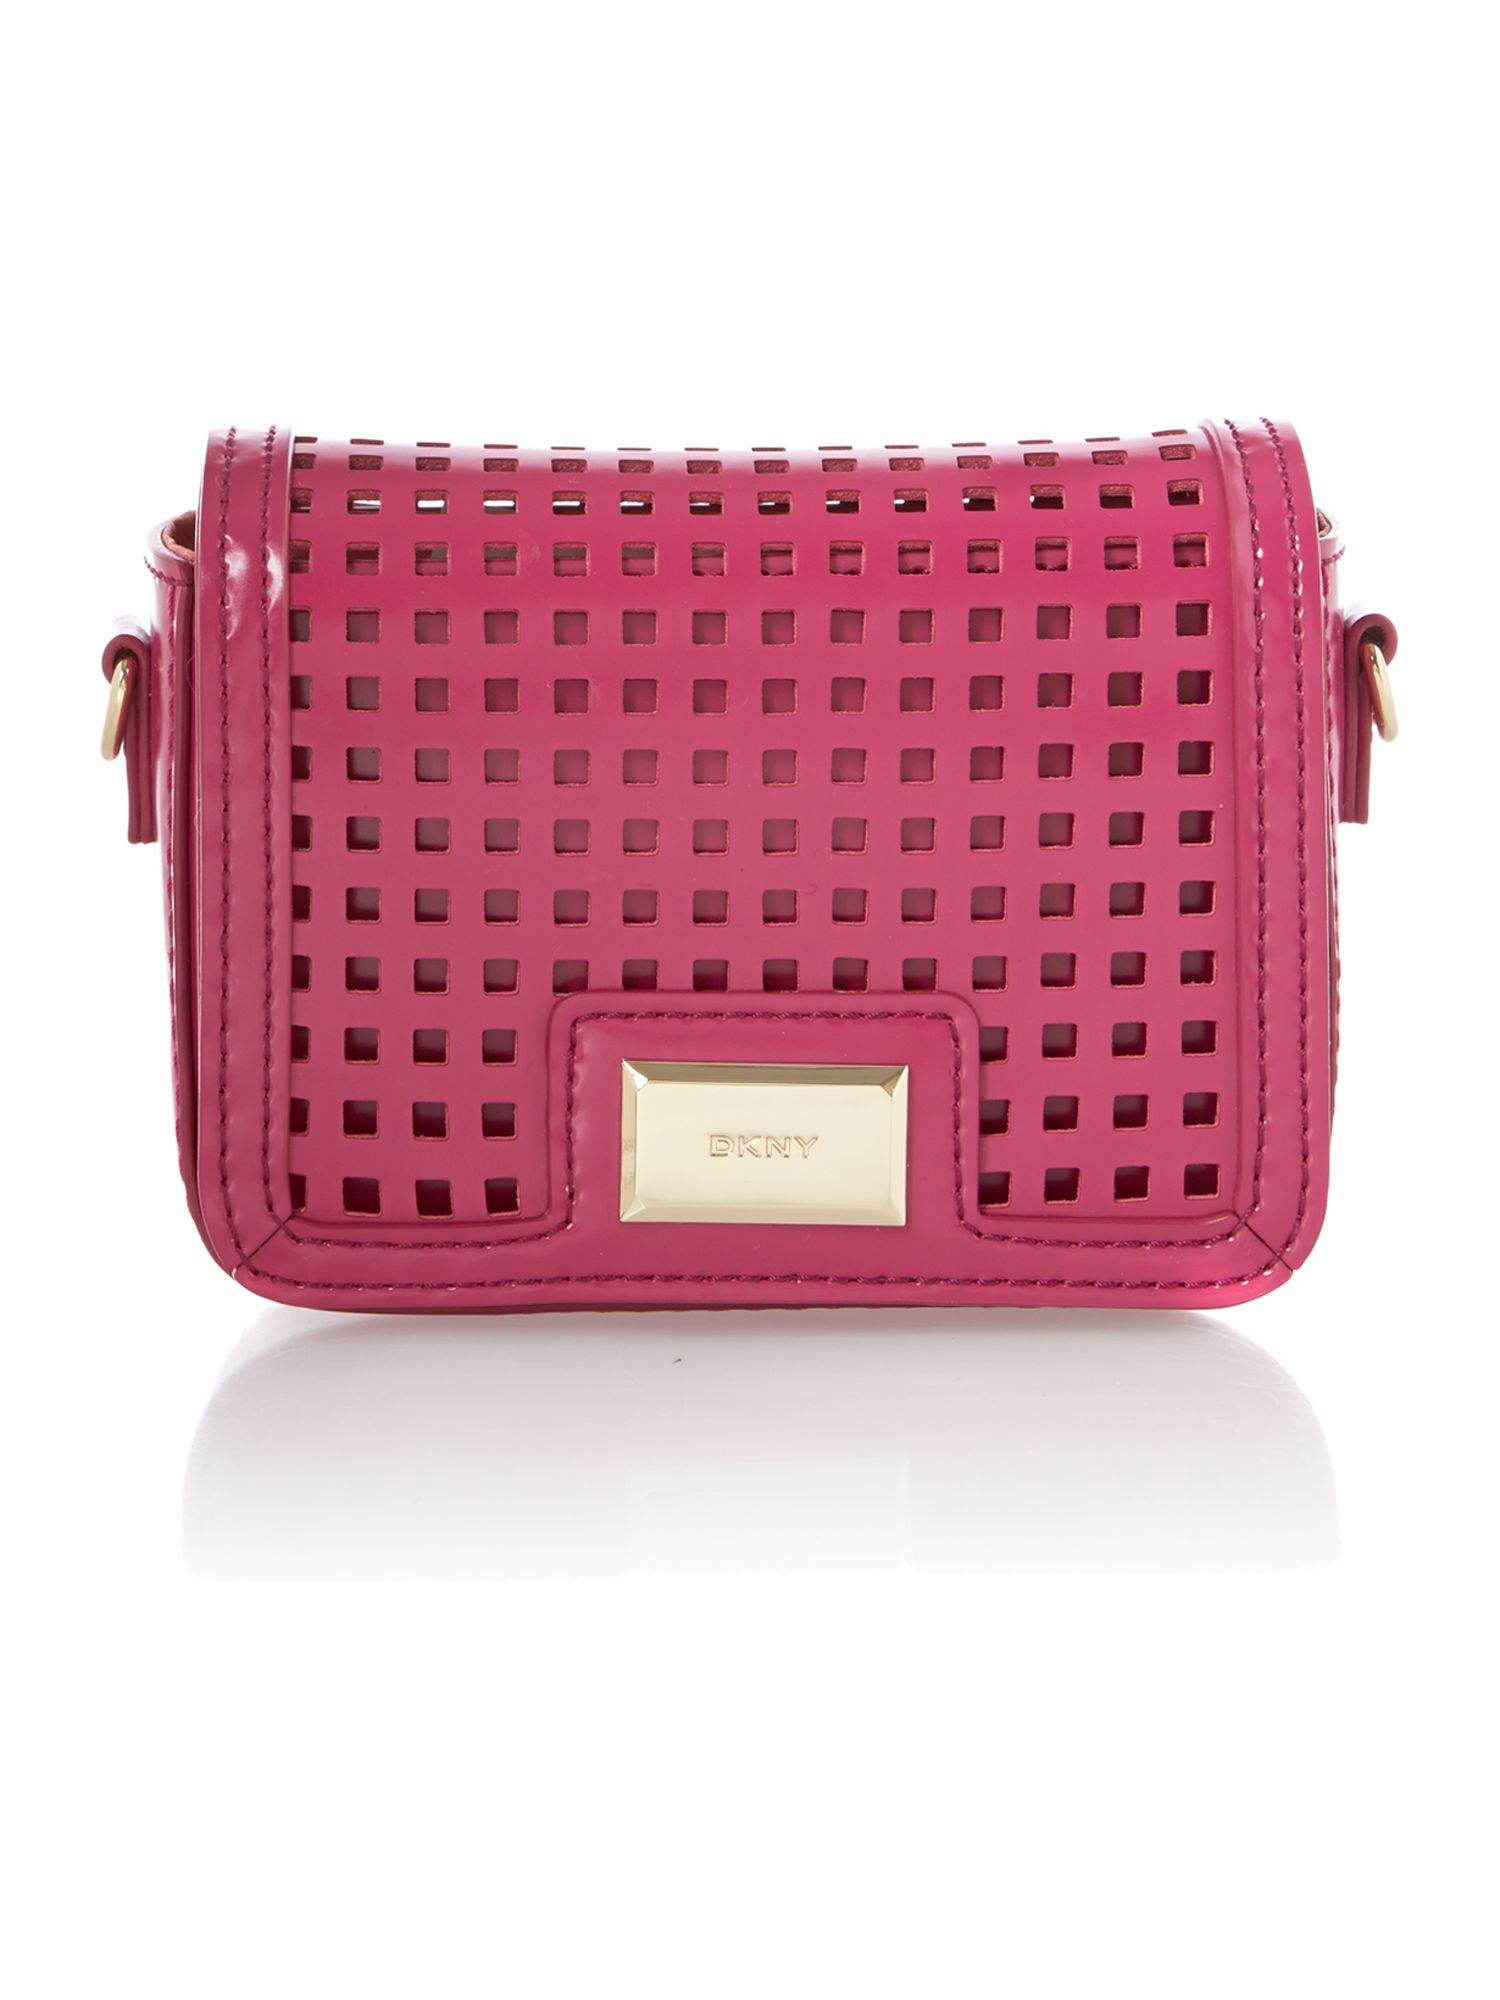 Hudson pink mini crossbody bag